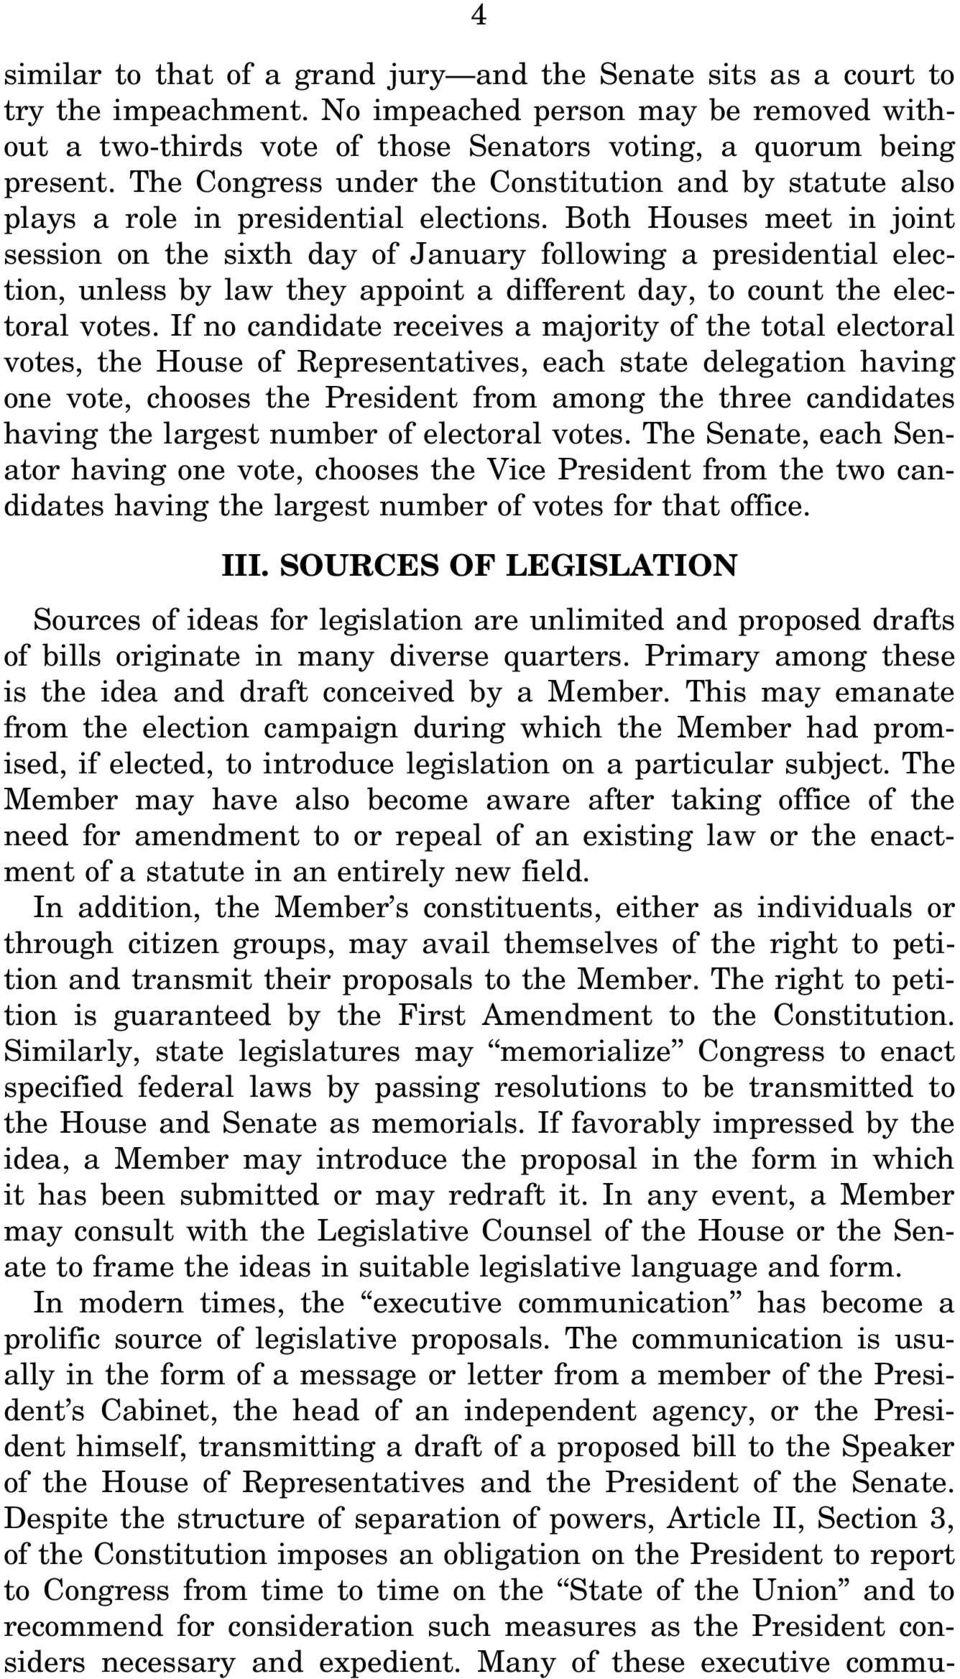 Both Houses meet in joint session on the sixth day of January following a presidential election, unless by law they appoint a different day, to count the electoral votes.